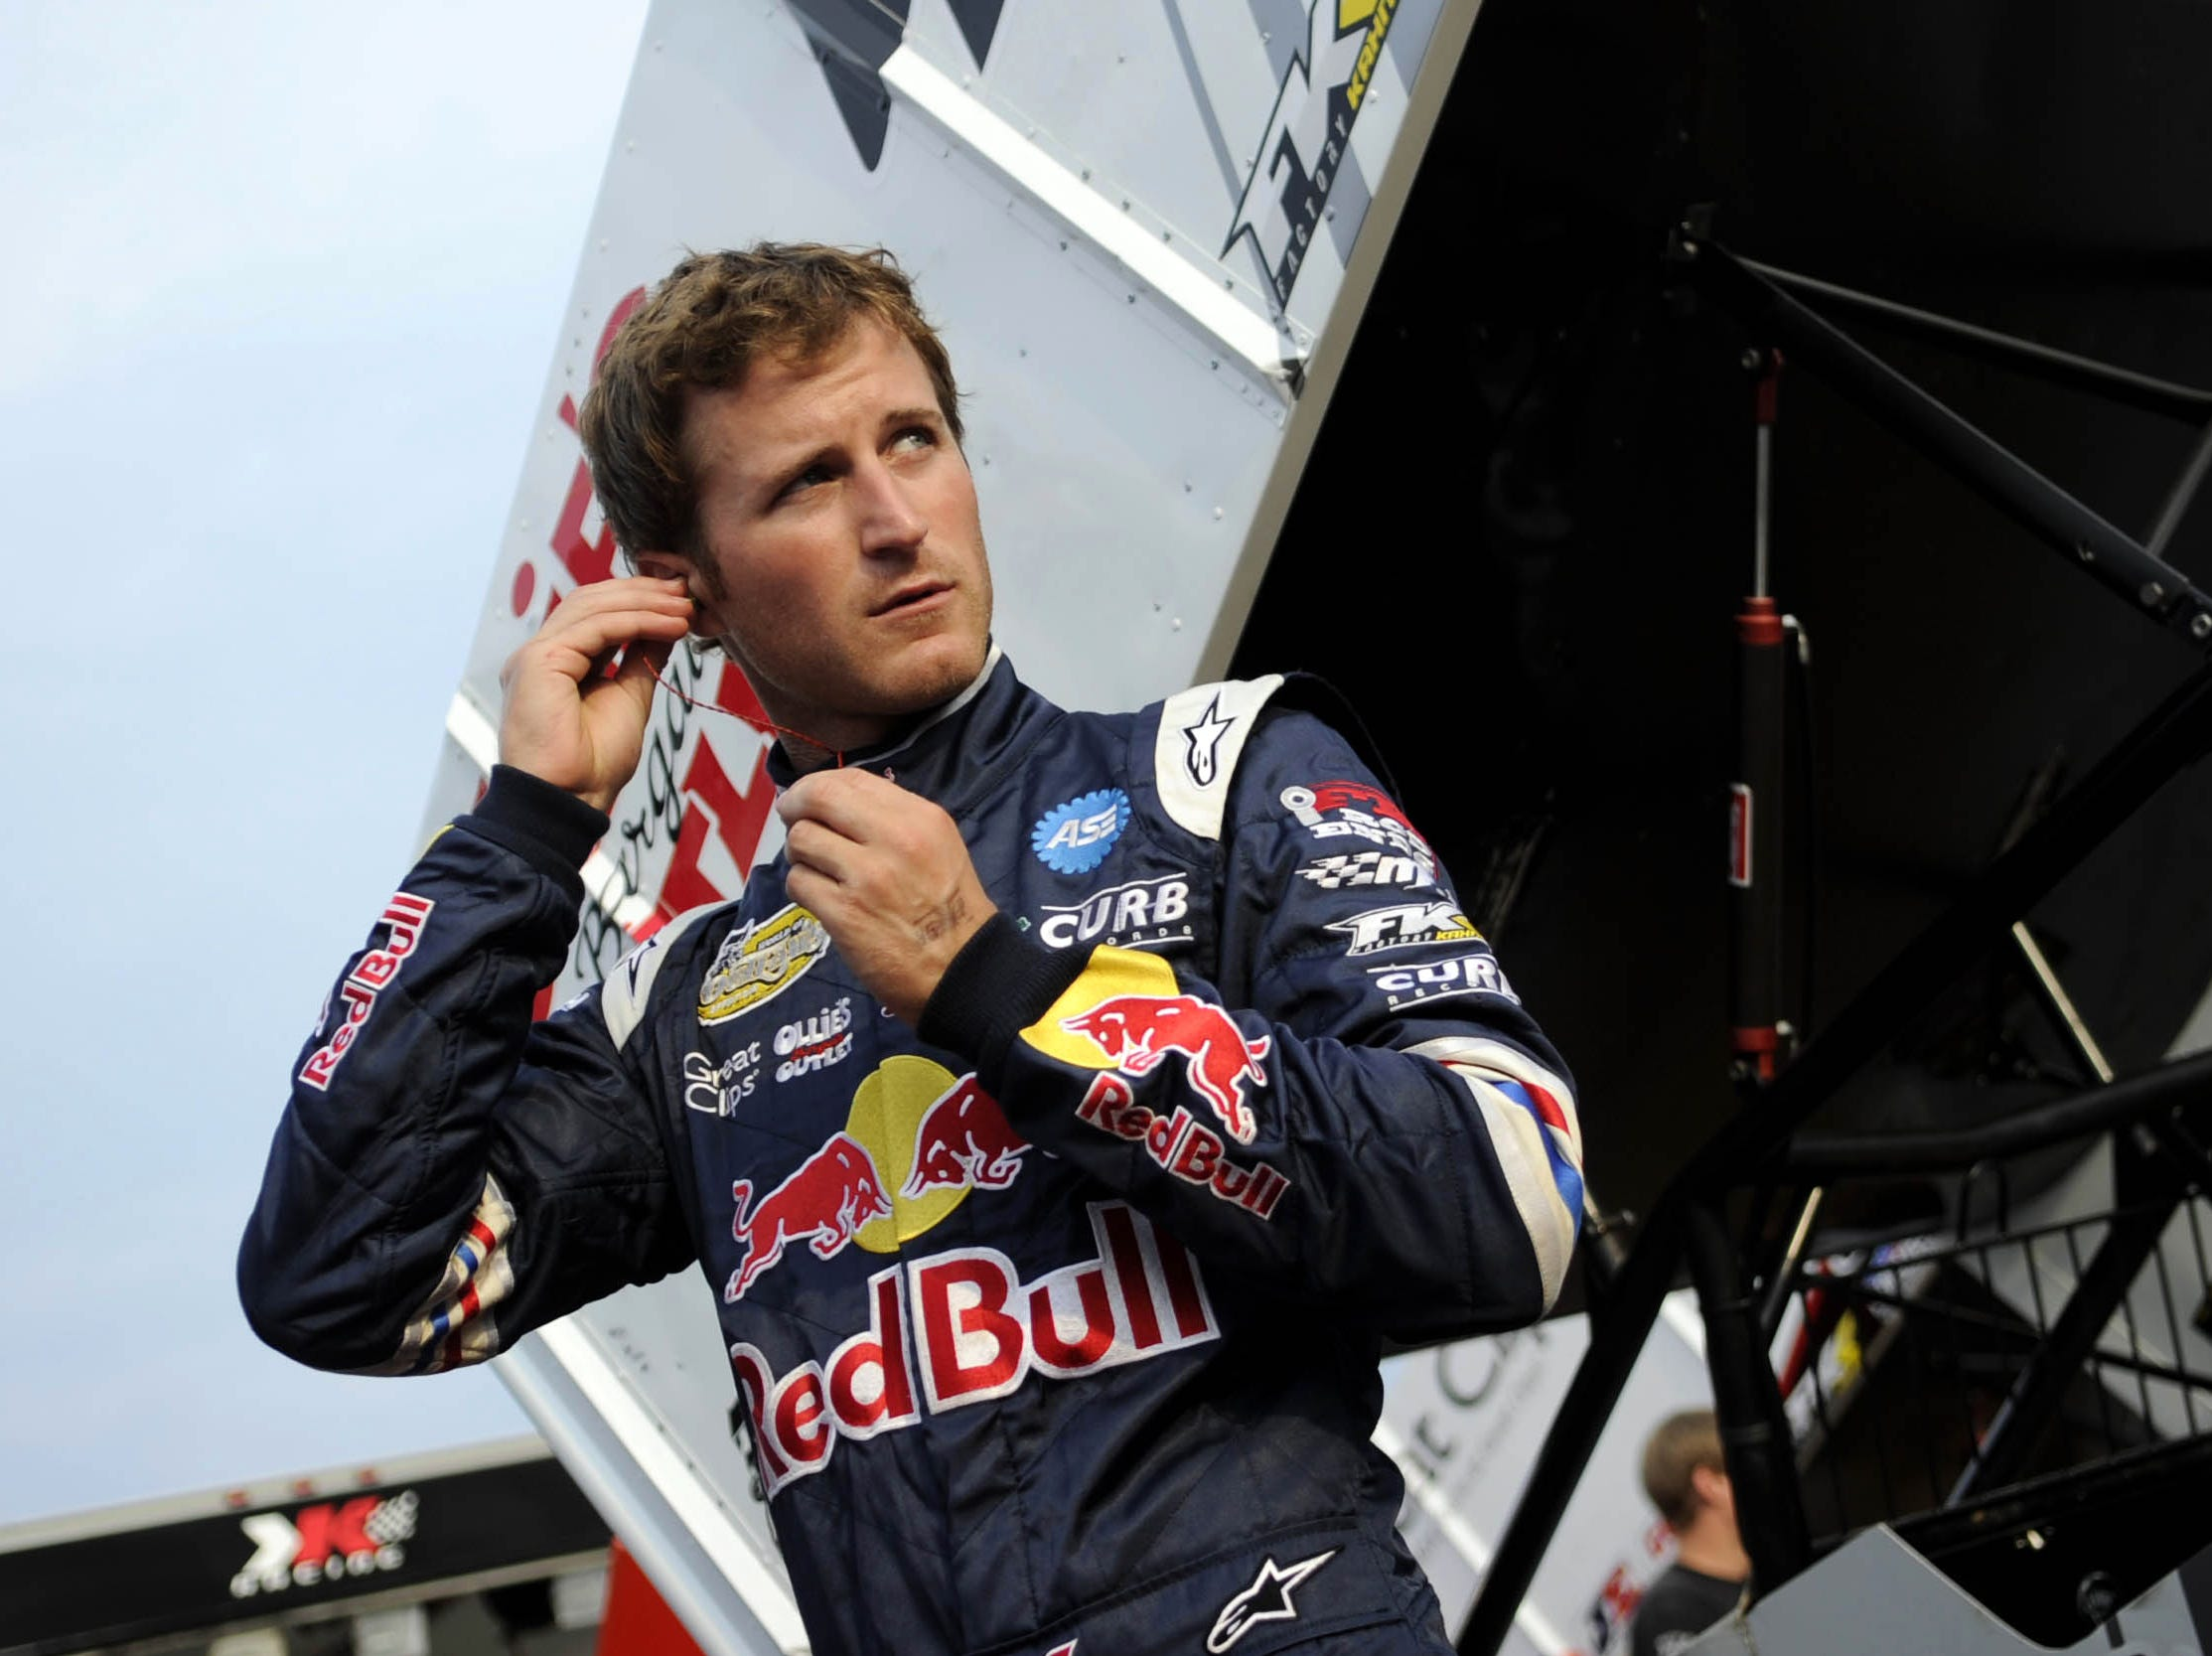 Kasey Kahne puts in his earplugs before time trials at Williams Grove Speedway Friday, July 22, 2011.